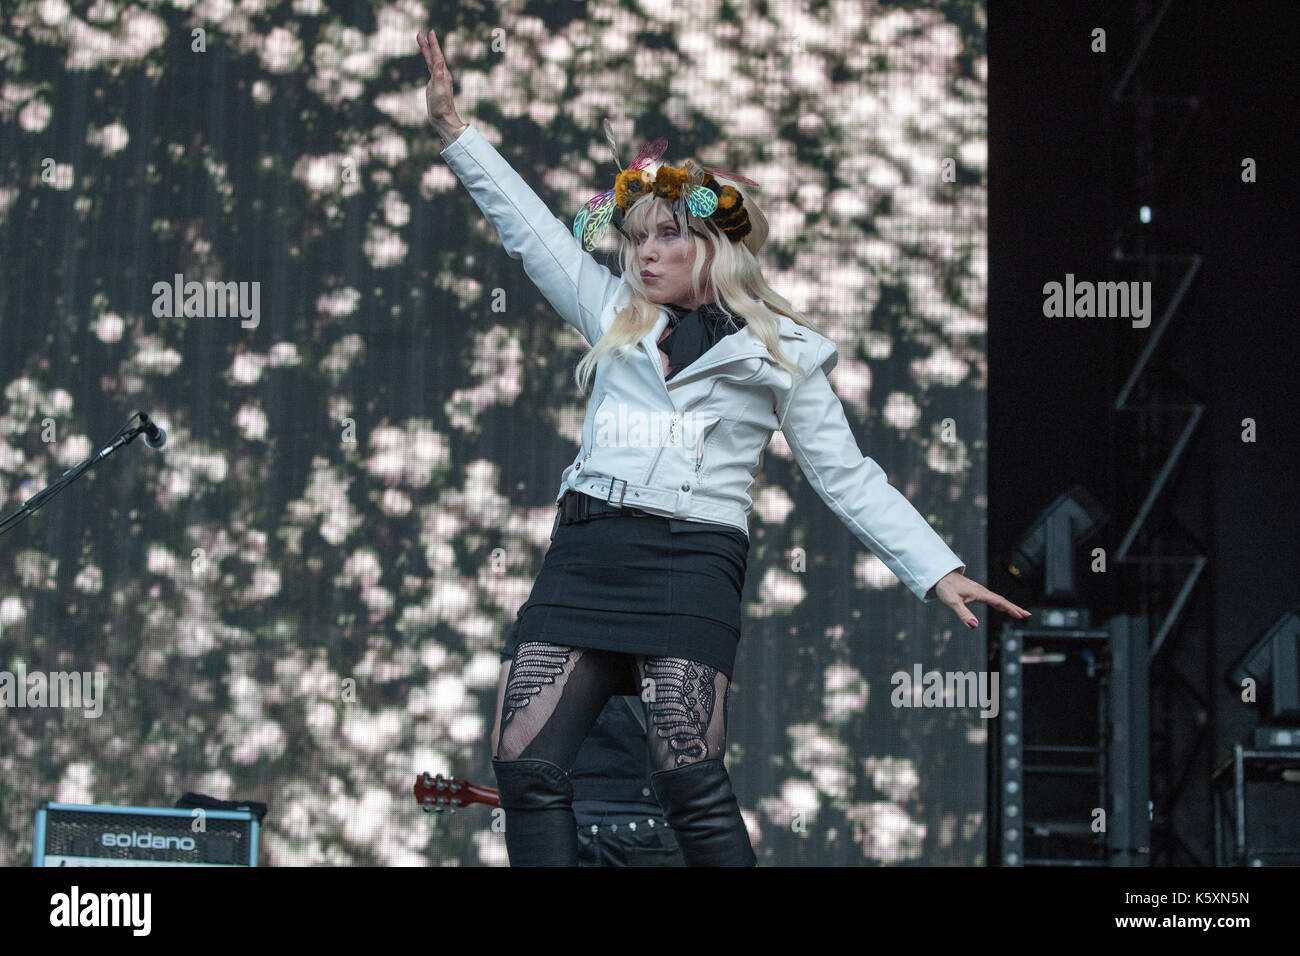 London, UK. 10th Sep, 2017. Blondie performs during Radio 2 Live in Hyde Park 2017 on September 10, 2017, London. Stock Photo